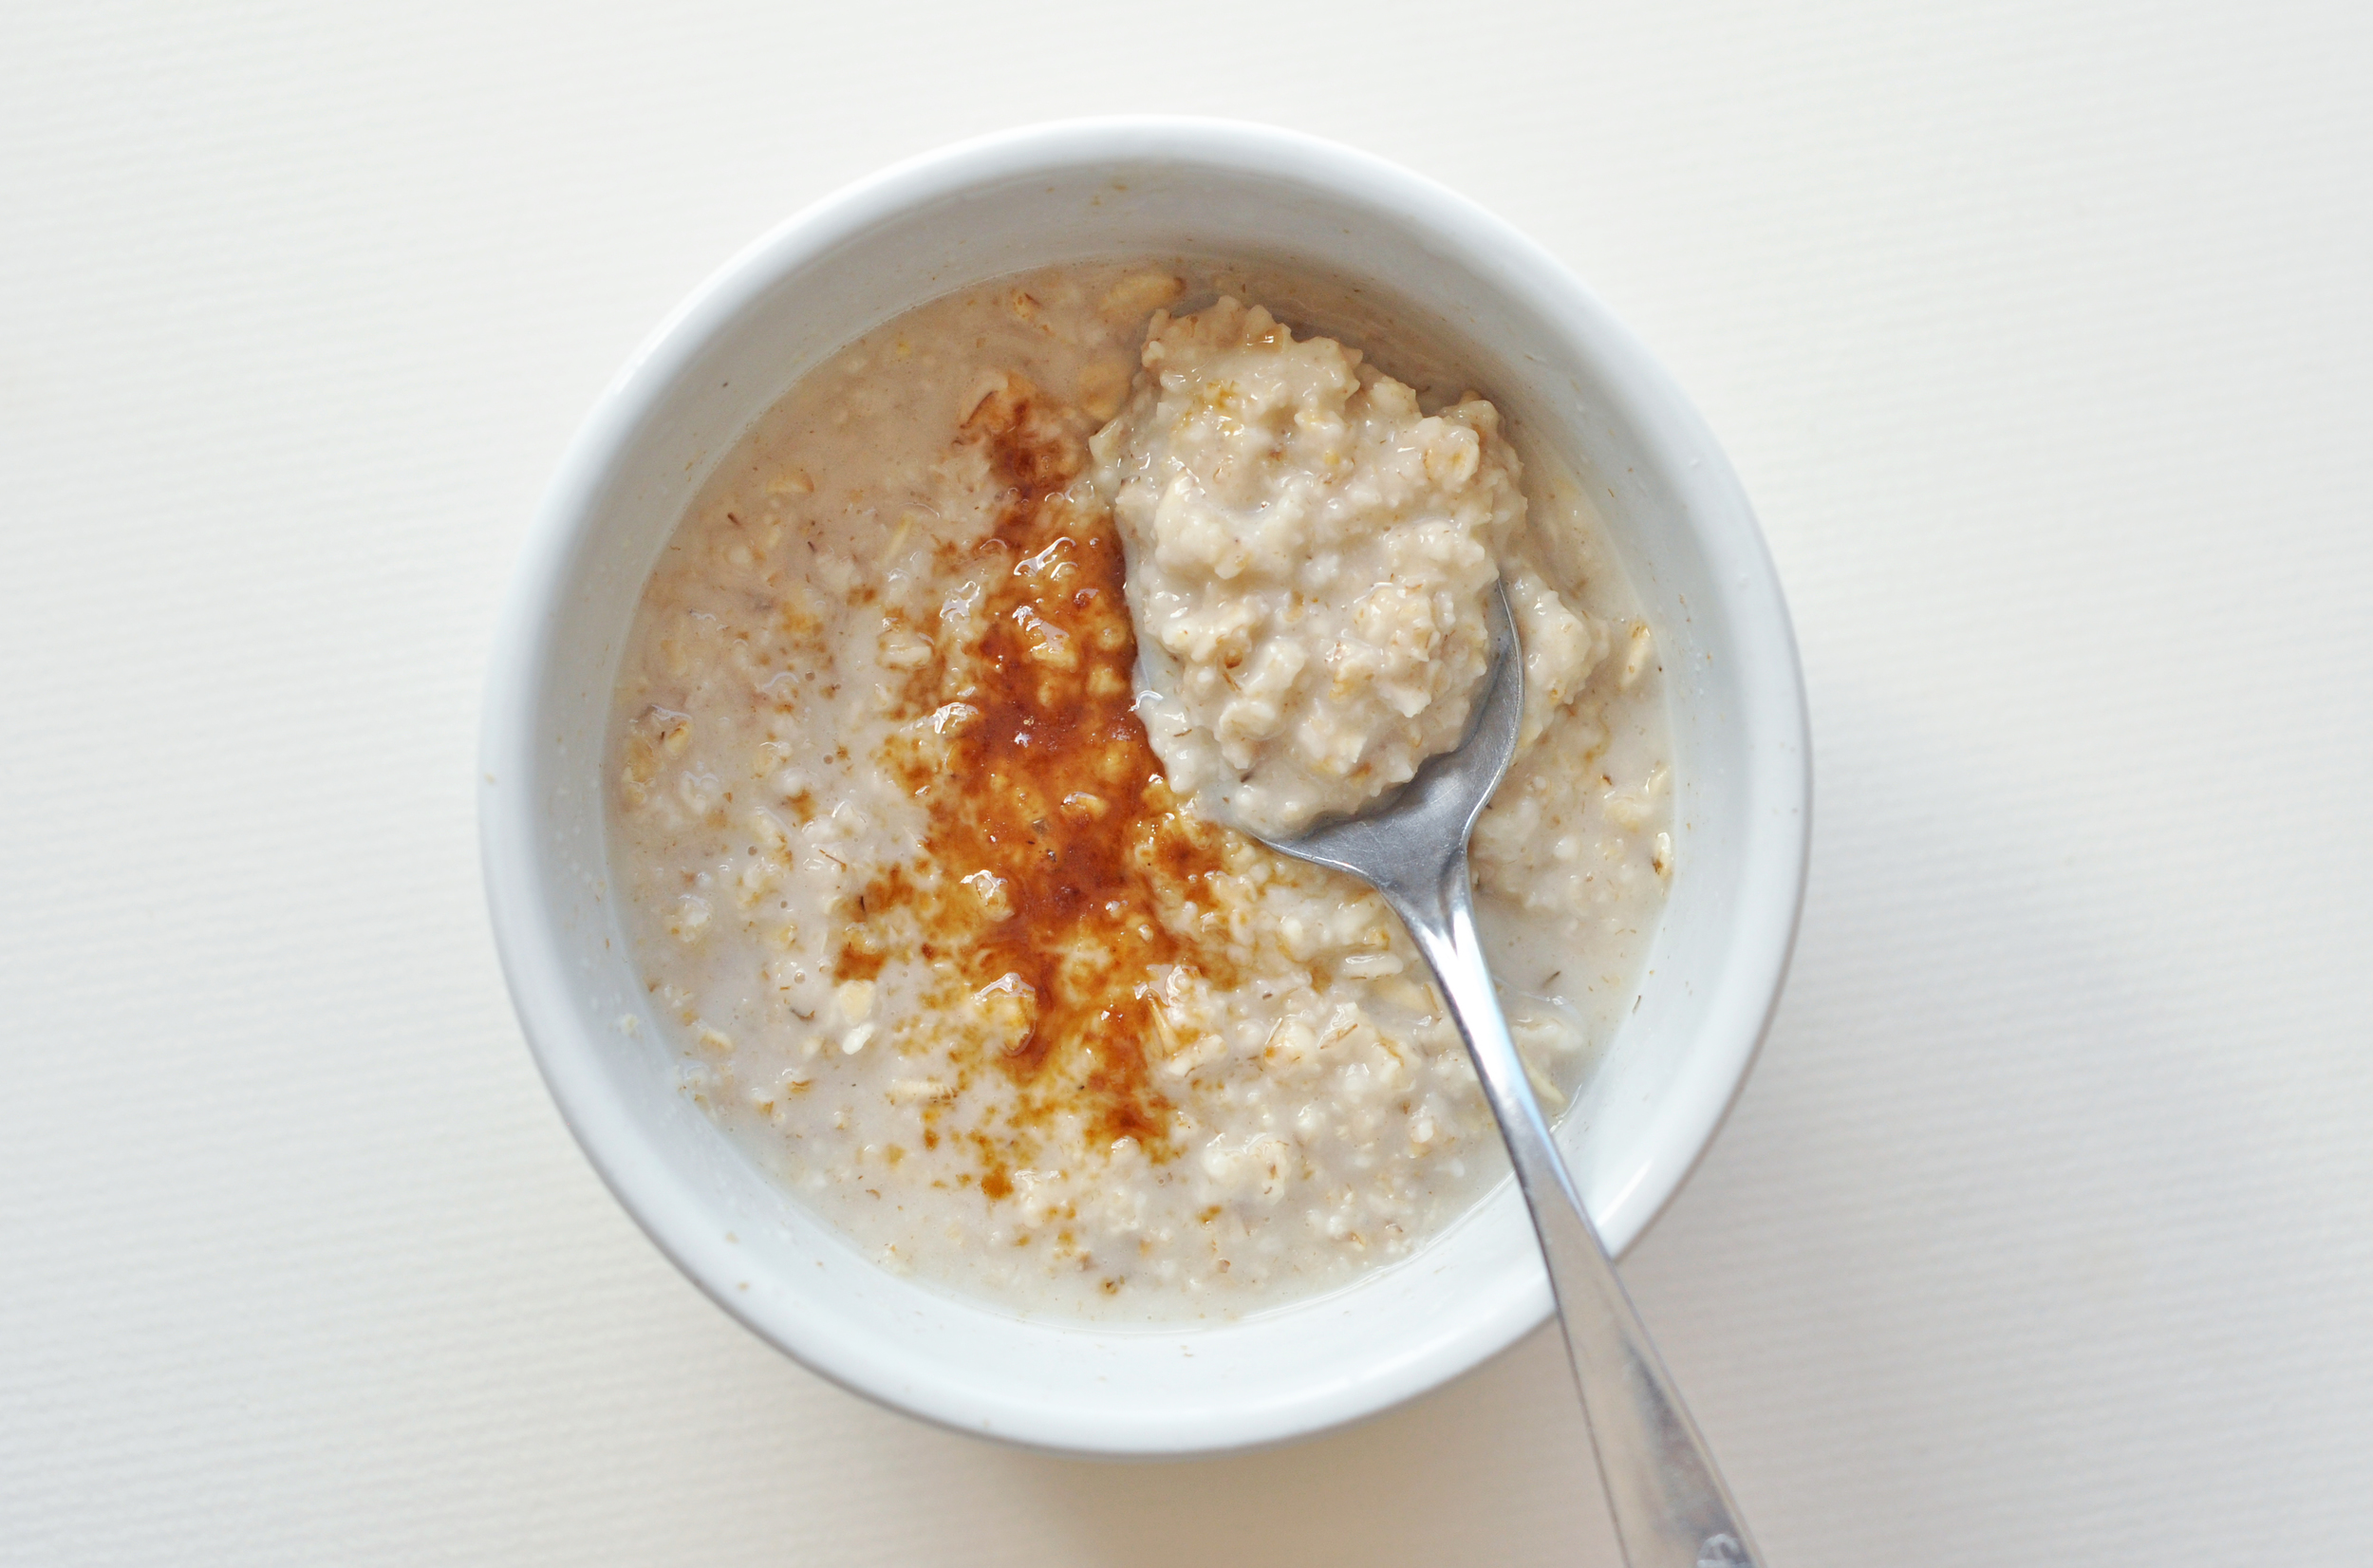 creamy oats with a sprinkling of coconut sugar